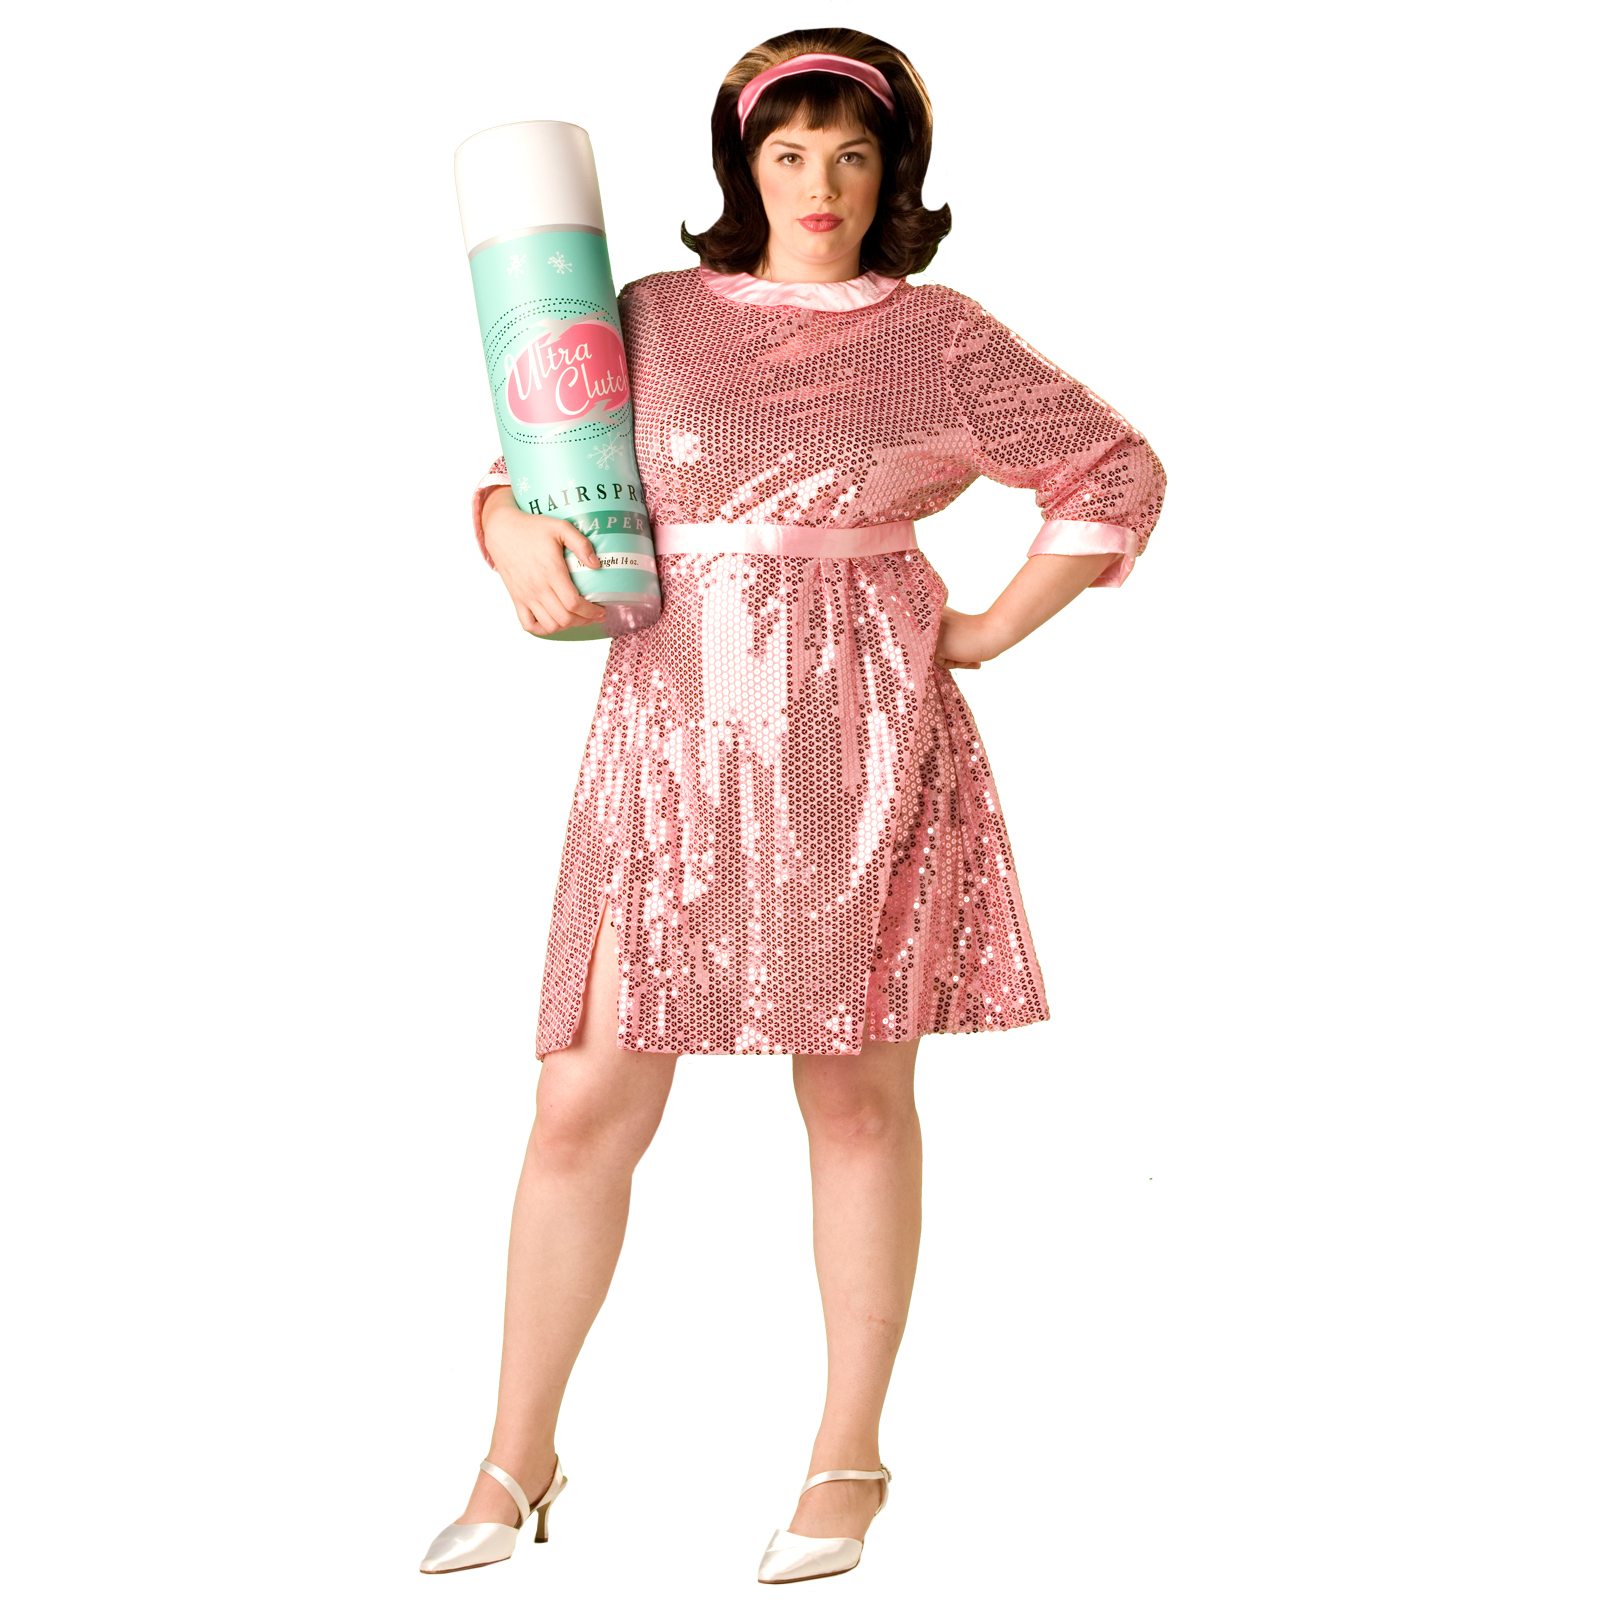 Gallery For gt Hairspray Costumes Tracy